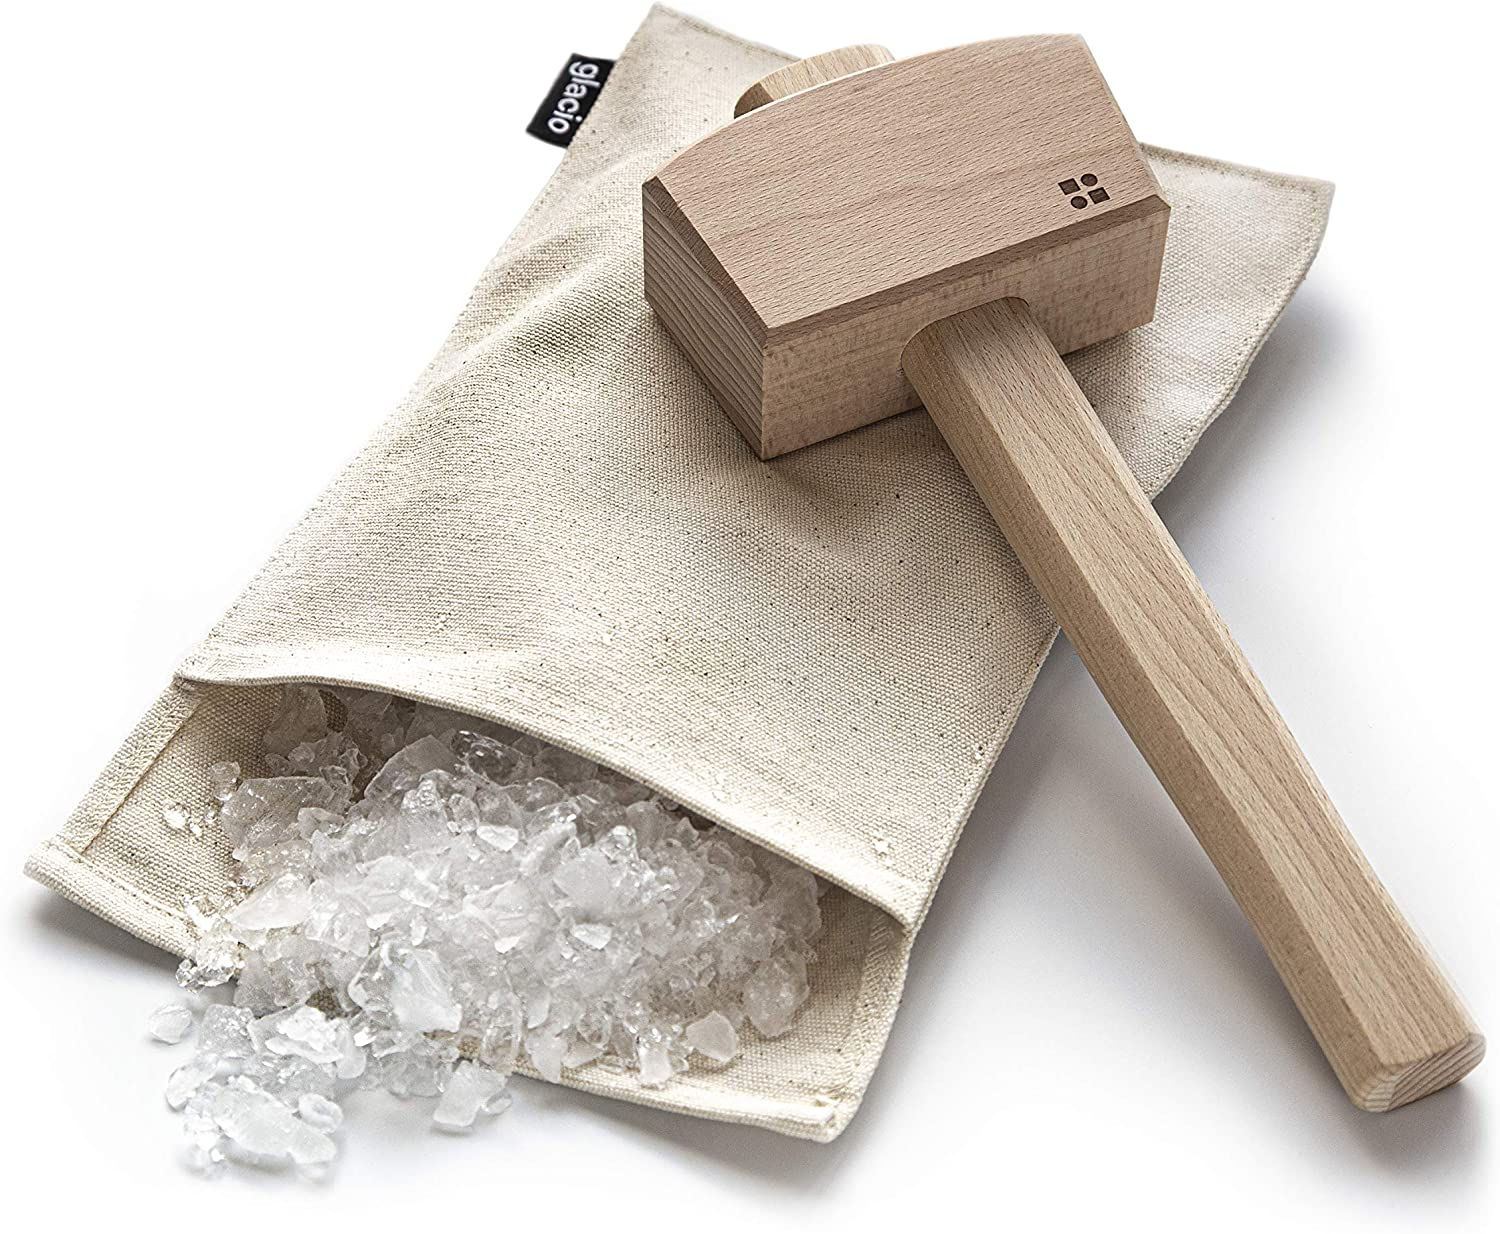 glacio Ice Mallet and Lewis Discount is also underway Bag for Wood Canvas Hammer sold out -